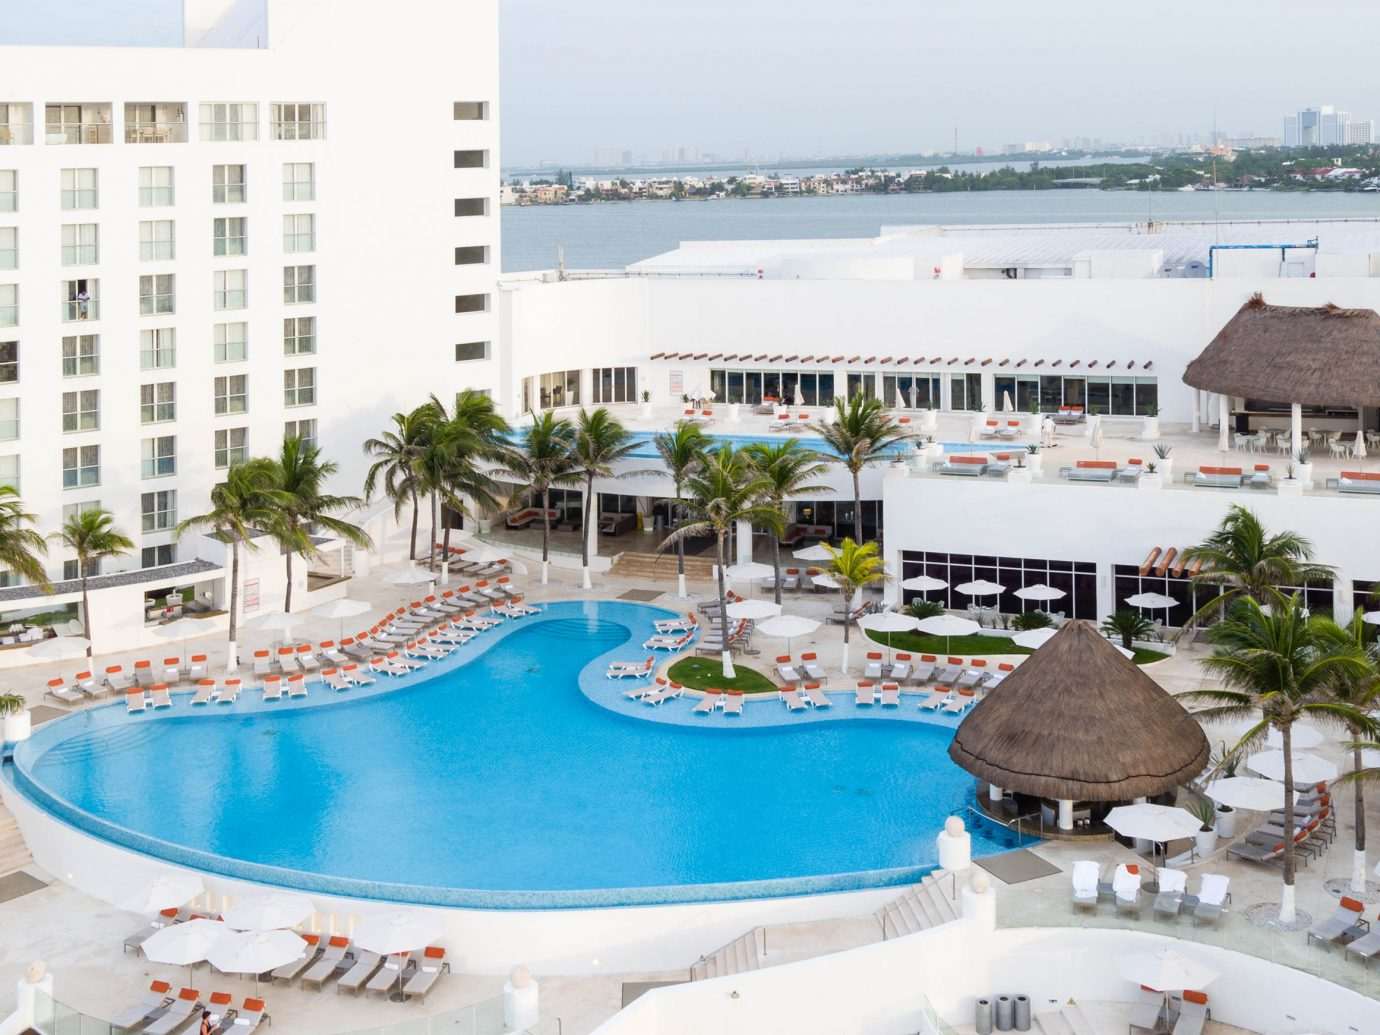 All-Inclusive Resorts Hotels Romance leisure swimming pool property Resort condominium vacation marina Water park estate resort town real estate apartment blue several